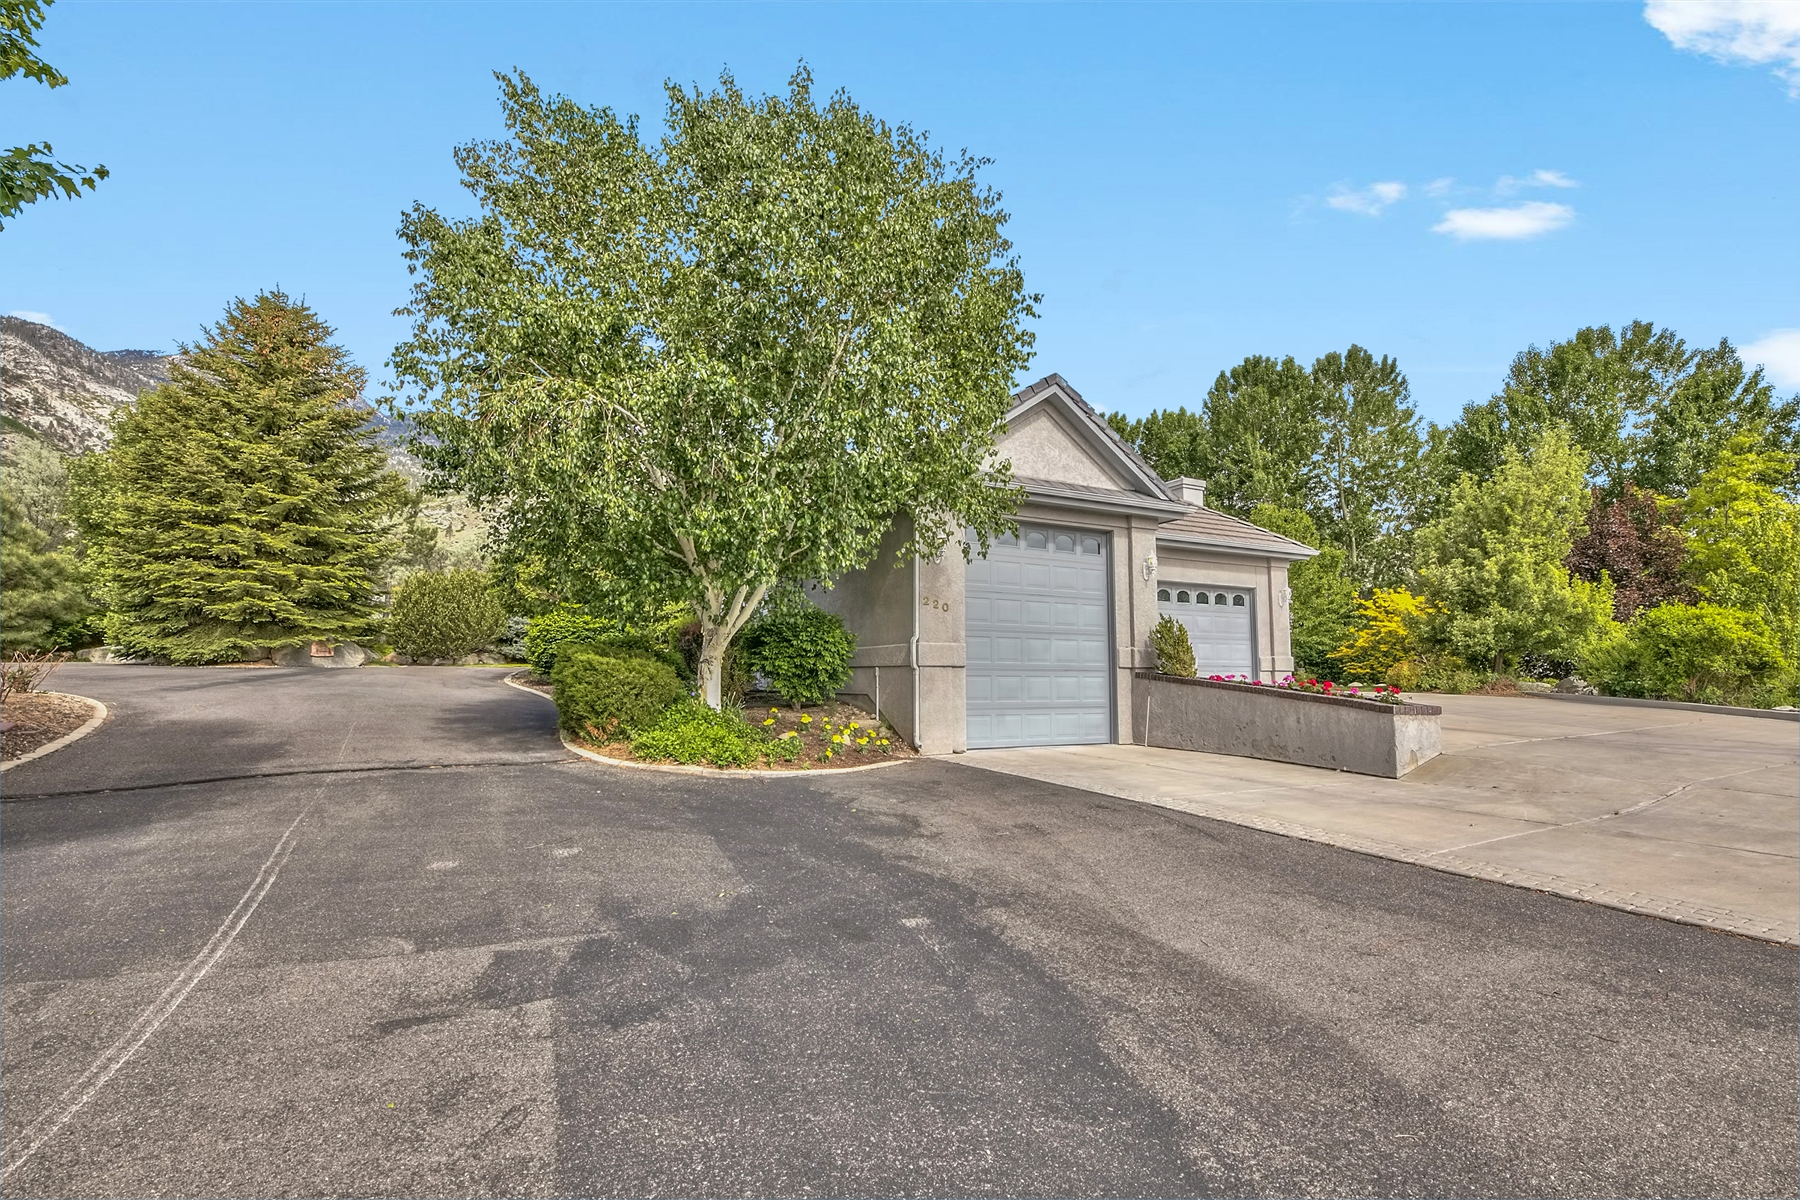 Additional photo for property listing at 220 Goa Way, Gardnerville, Nevada 220 Goa Way Gardnerville, Nevada 89460 United States